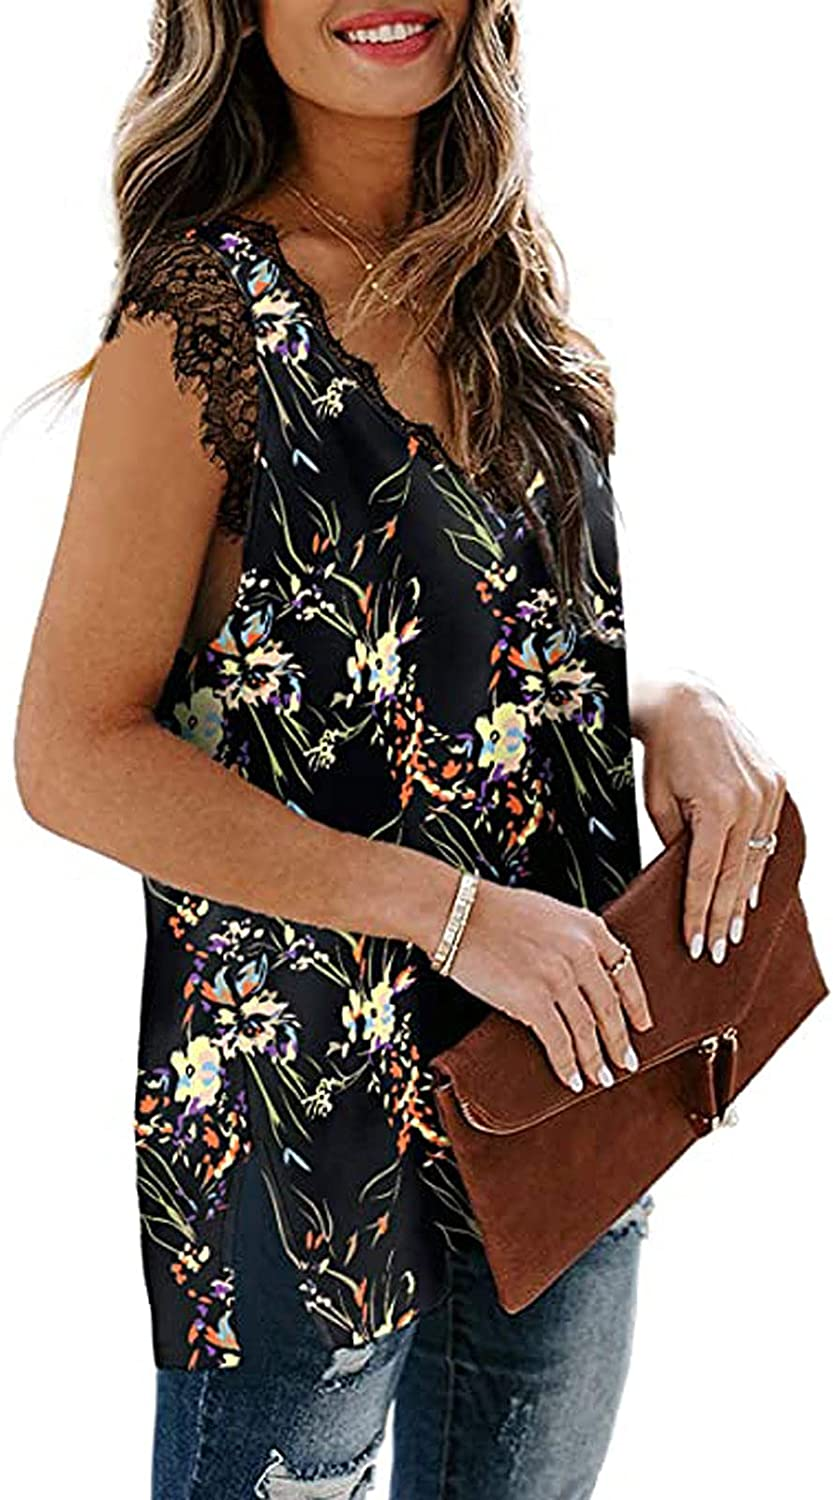 Womens Tank Top Floral Prints Soft Blouses Loose Sleeveless T-Shirts Fashion Lace V-Neck Collar Vest